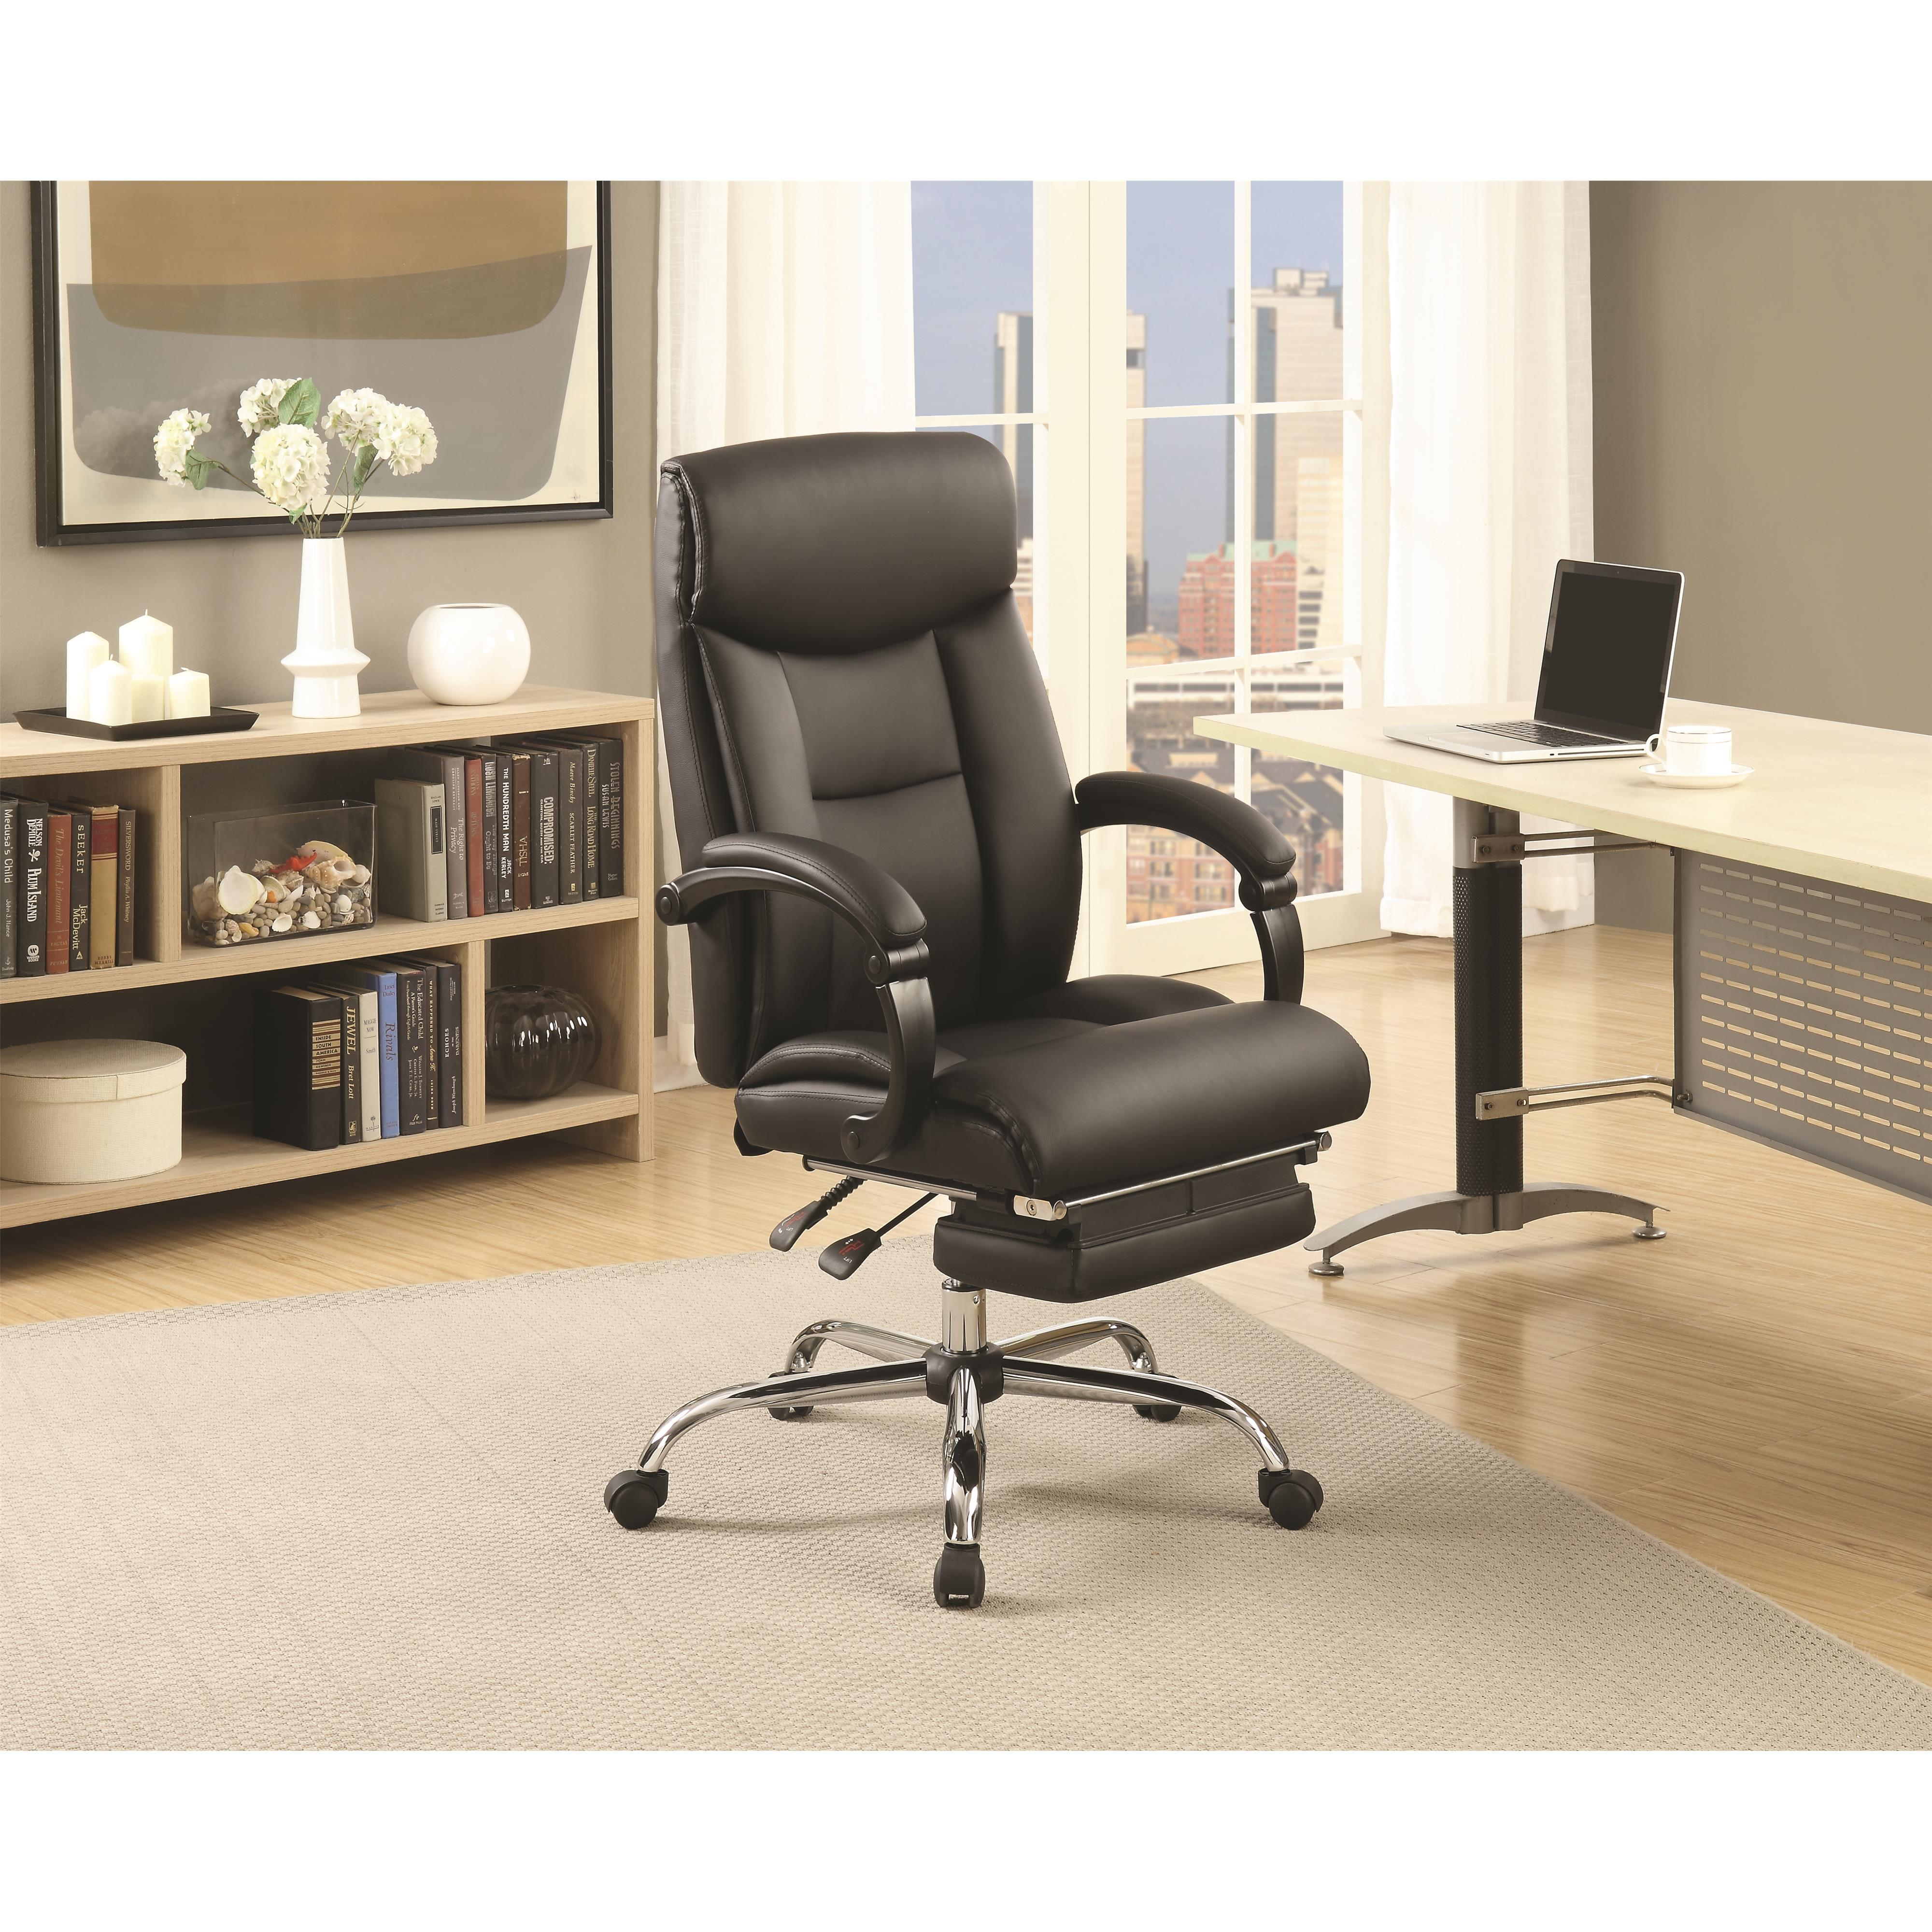 Coaster Office Chairs Office Chair - Item Number: 801318